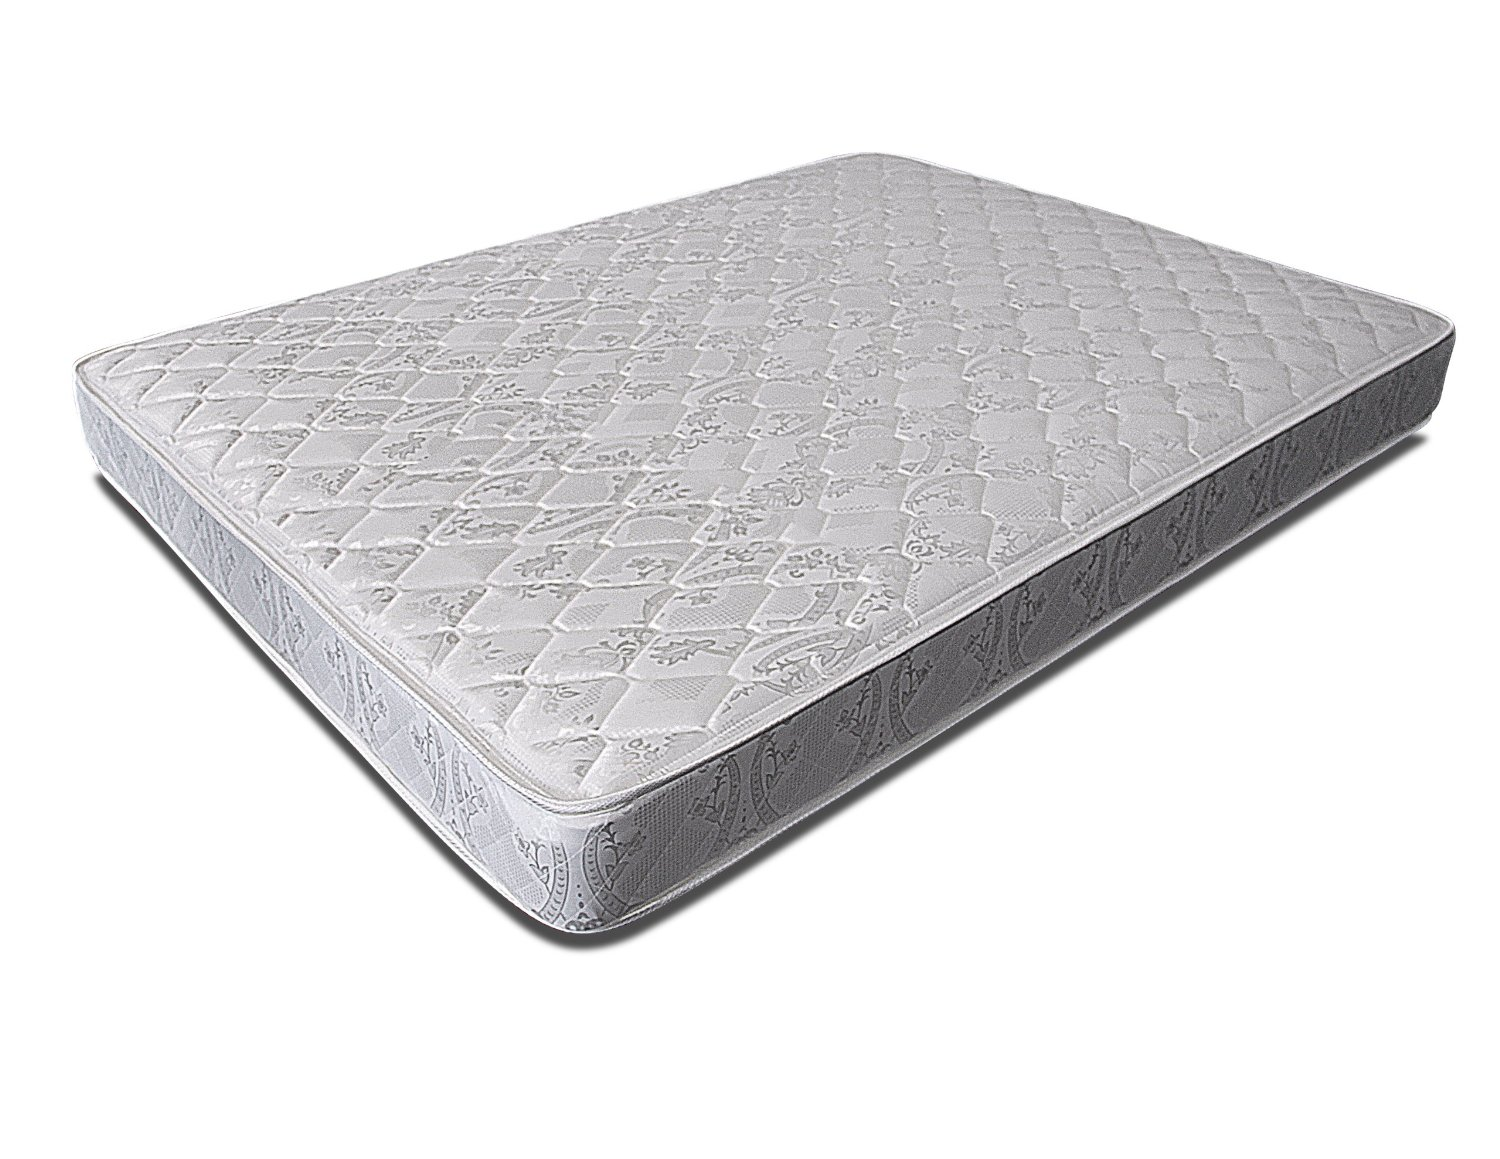 "Price Comparisons For Best Price Mattress 3"" Premium Ventilated Memory Foam Mattress Topper, Full"